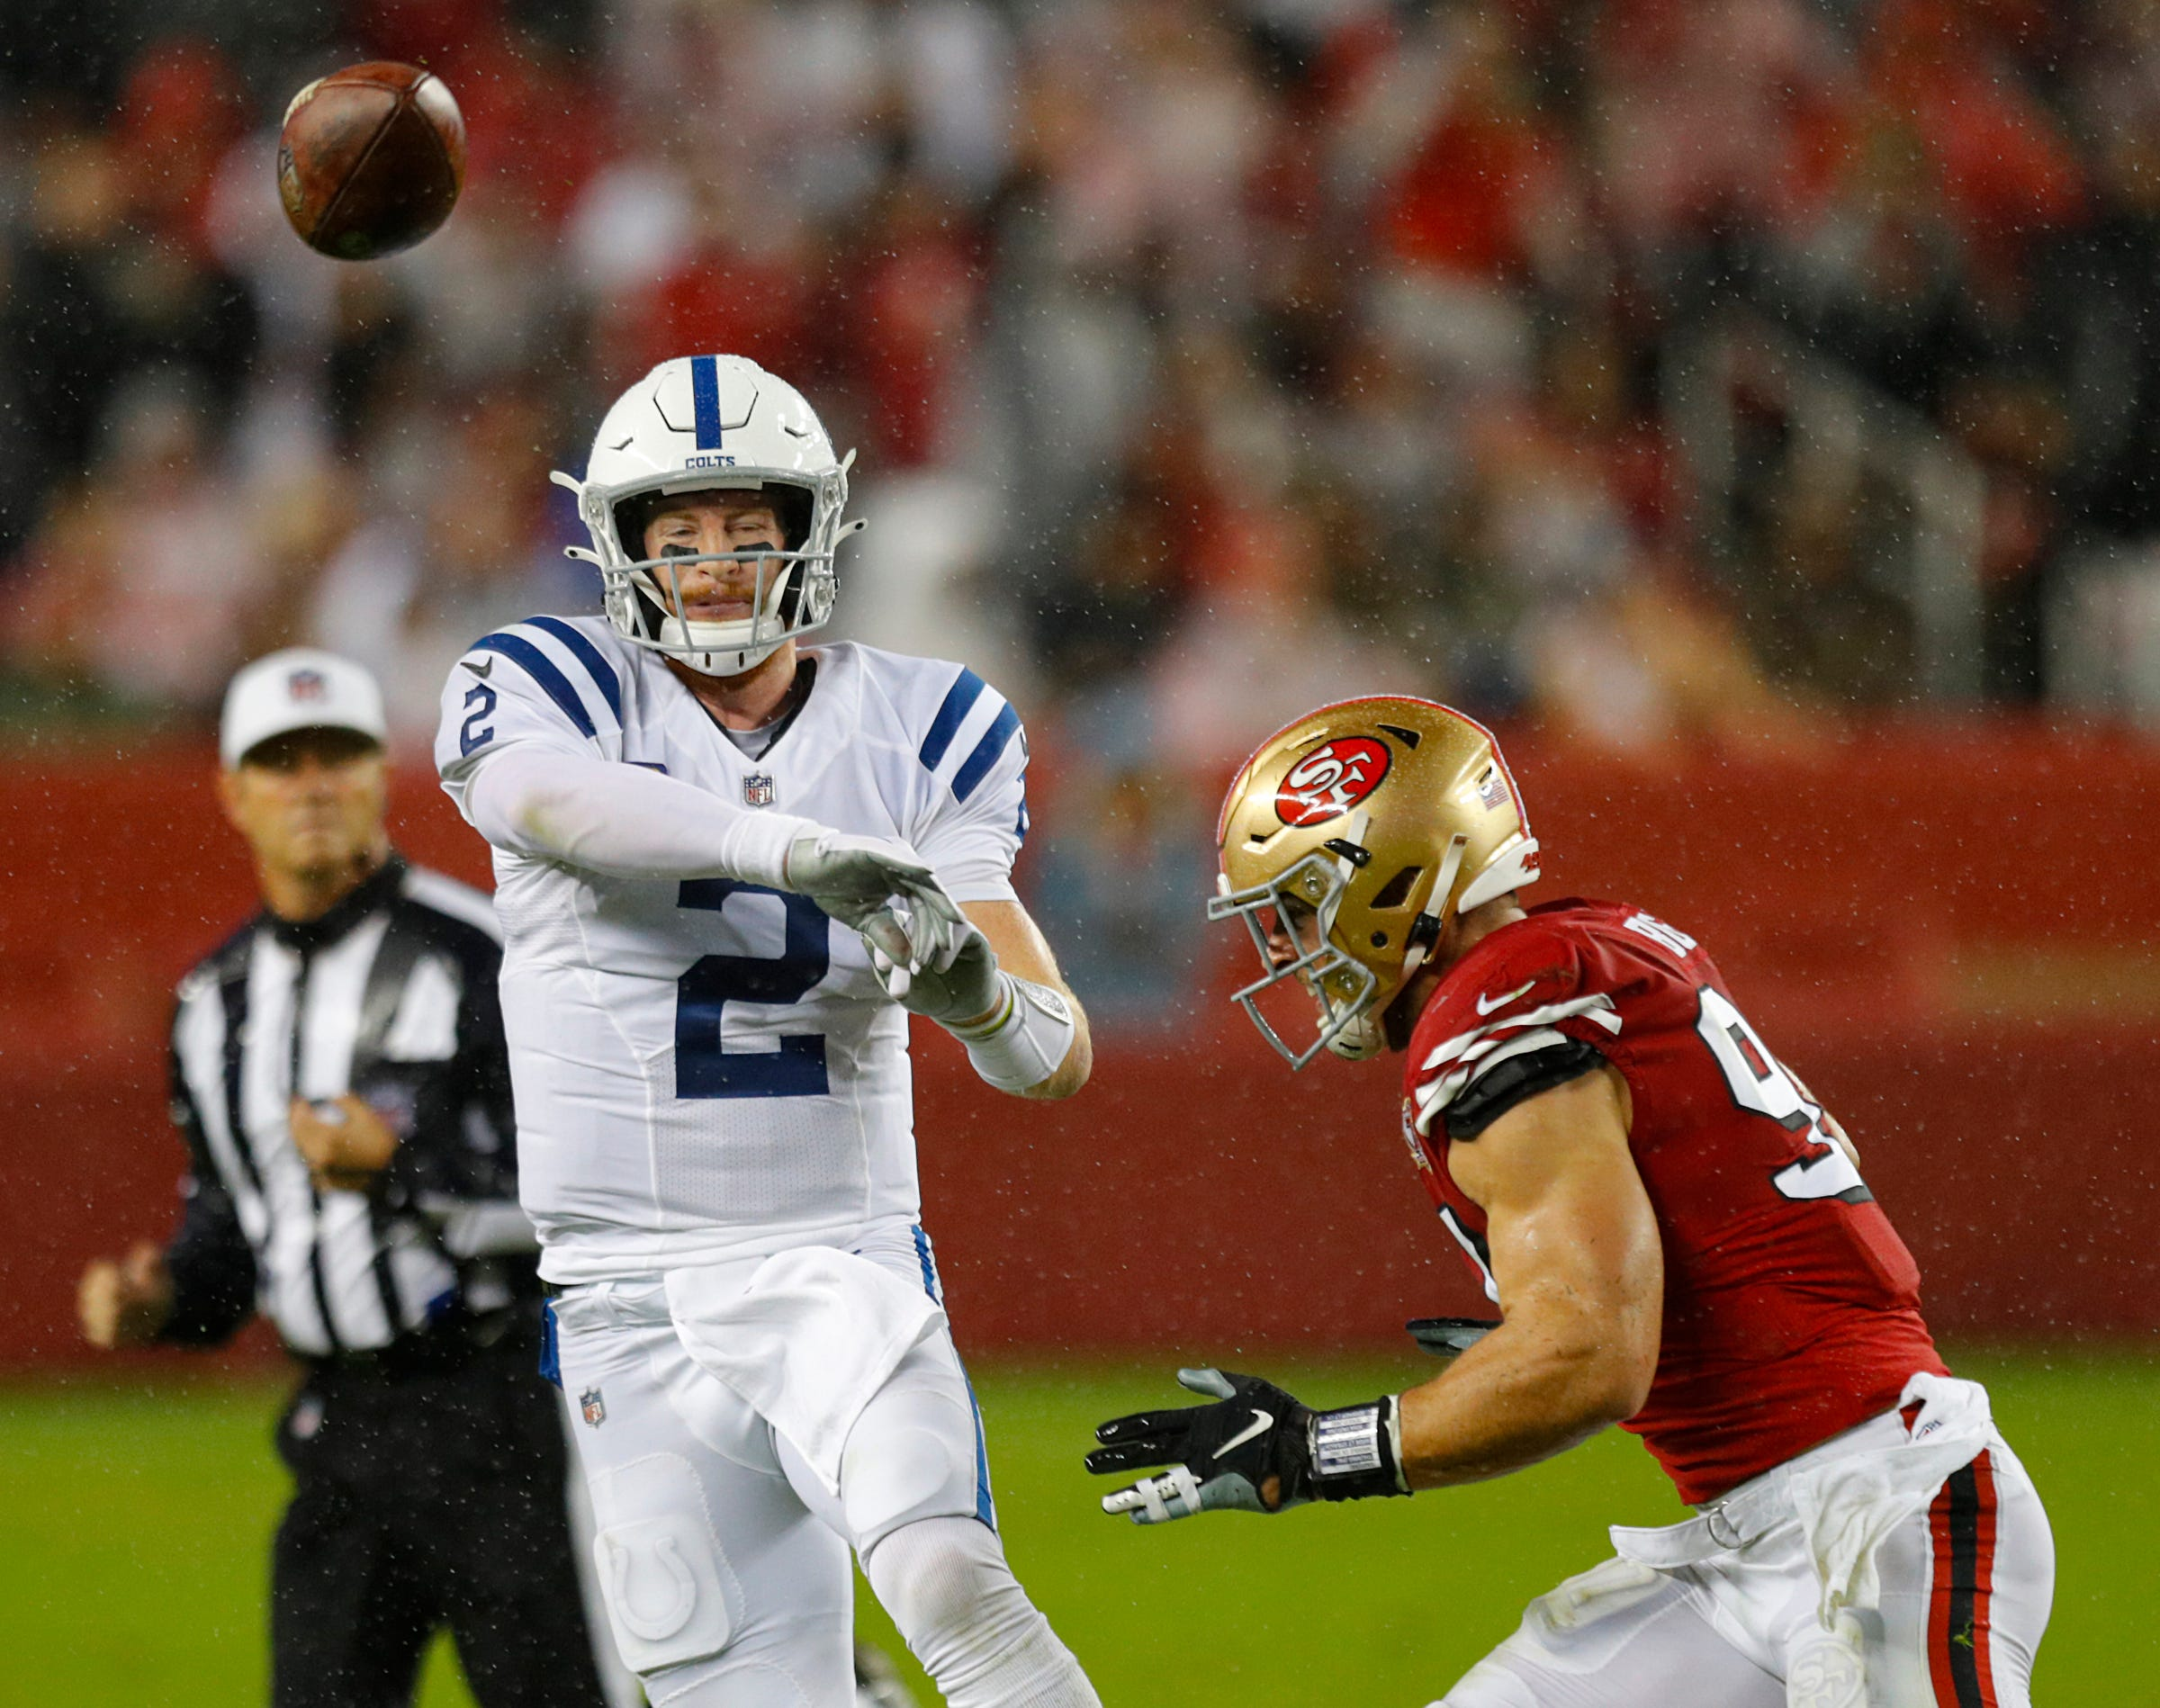 Weather plays havoc with Colts vs. 49ers game